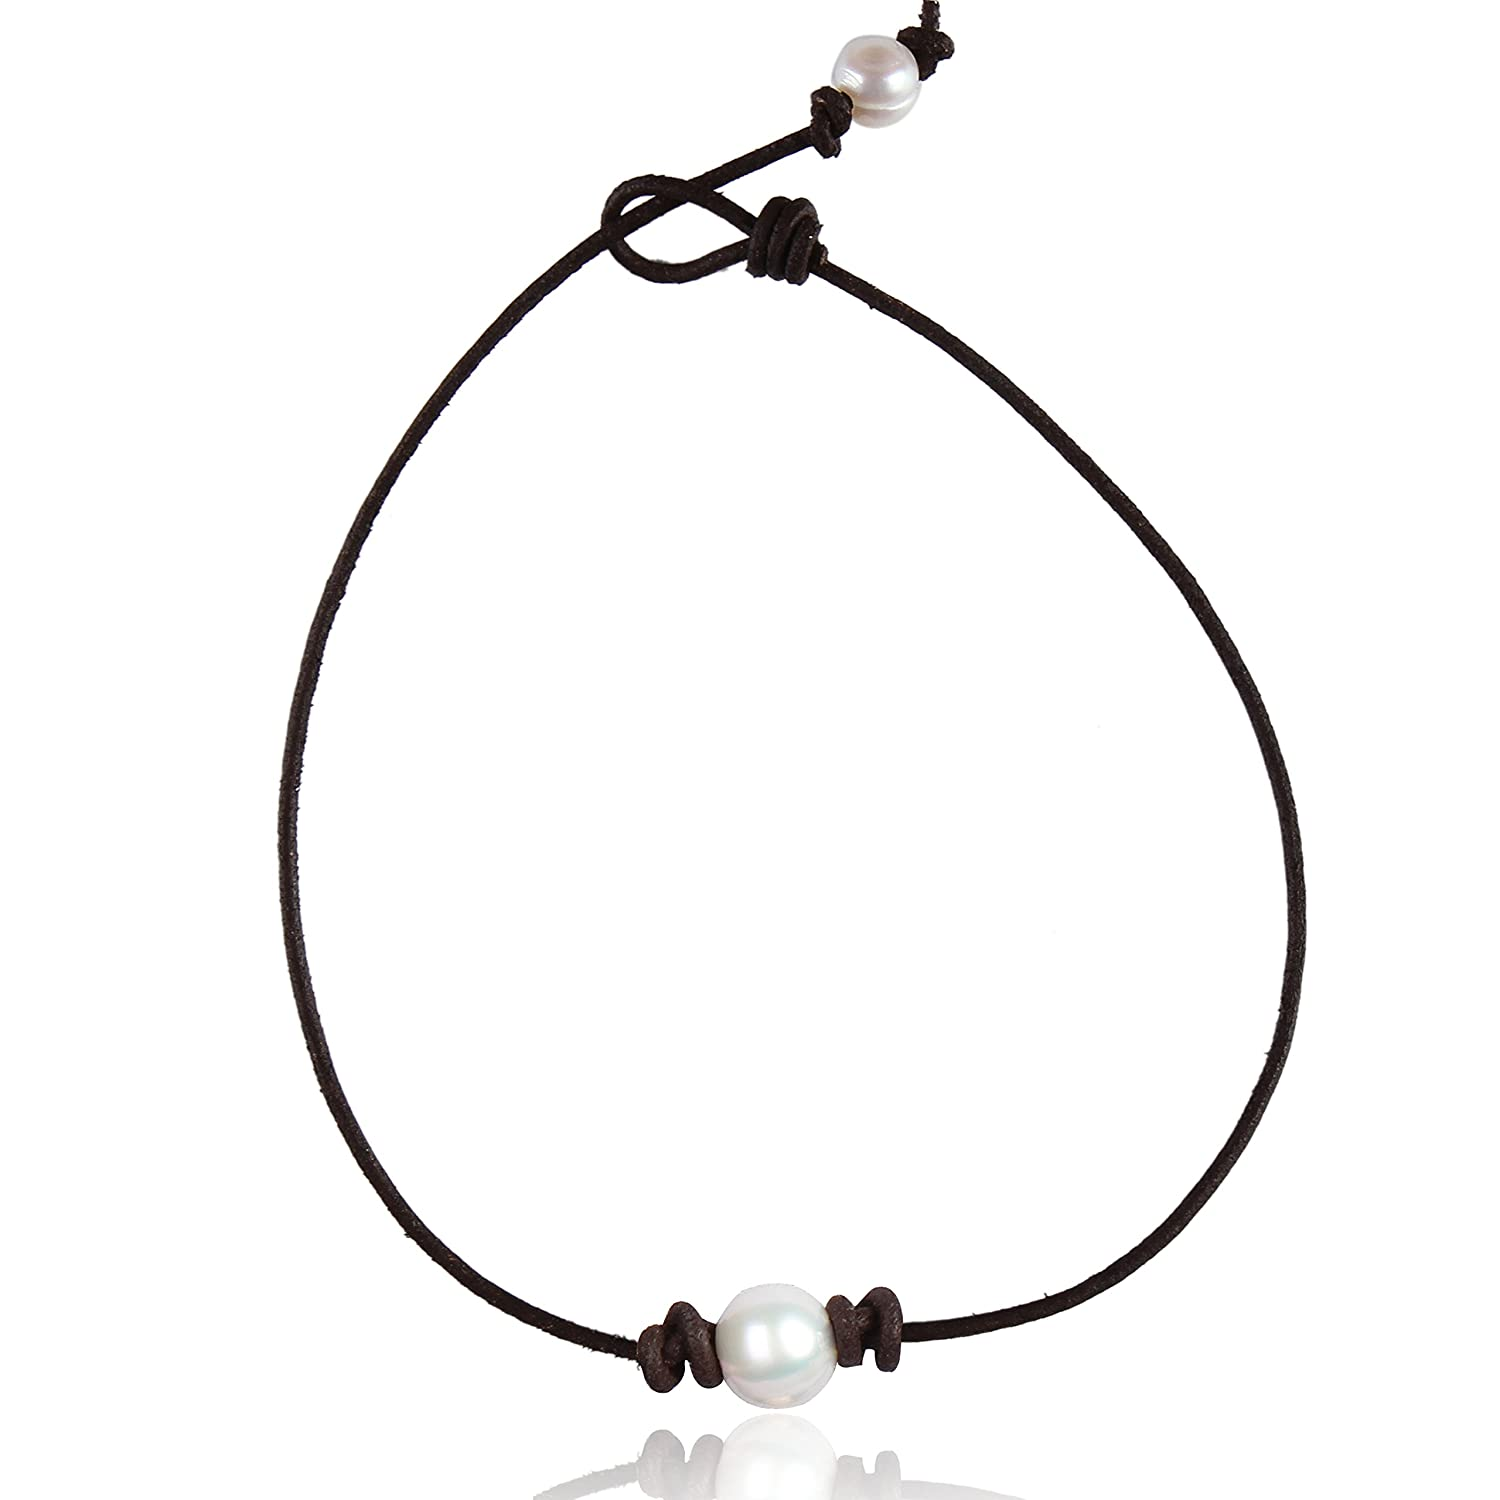 Amazon: Barch Single Pearl Choker Necklace On Genuine Leather Cord For  Women Handmade Choker Jewelry Gift (13